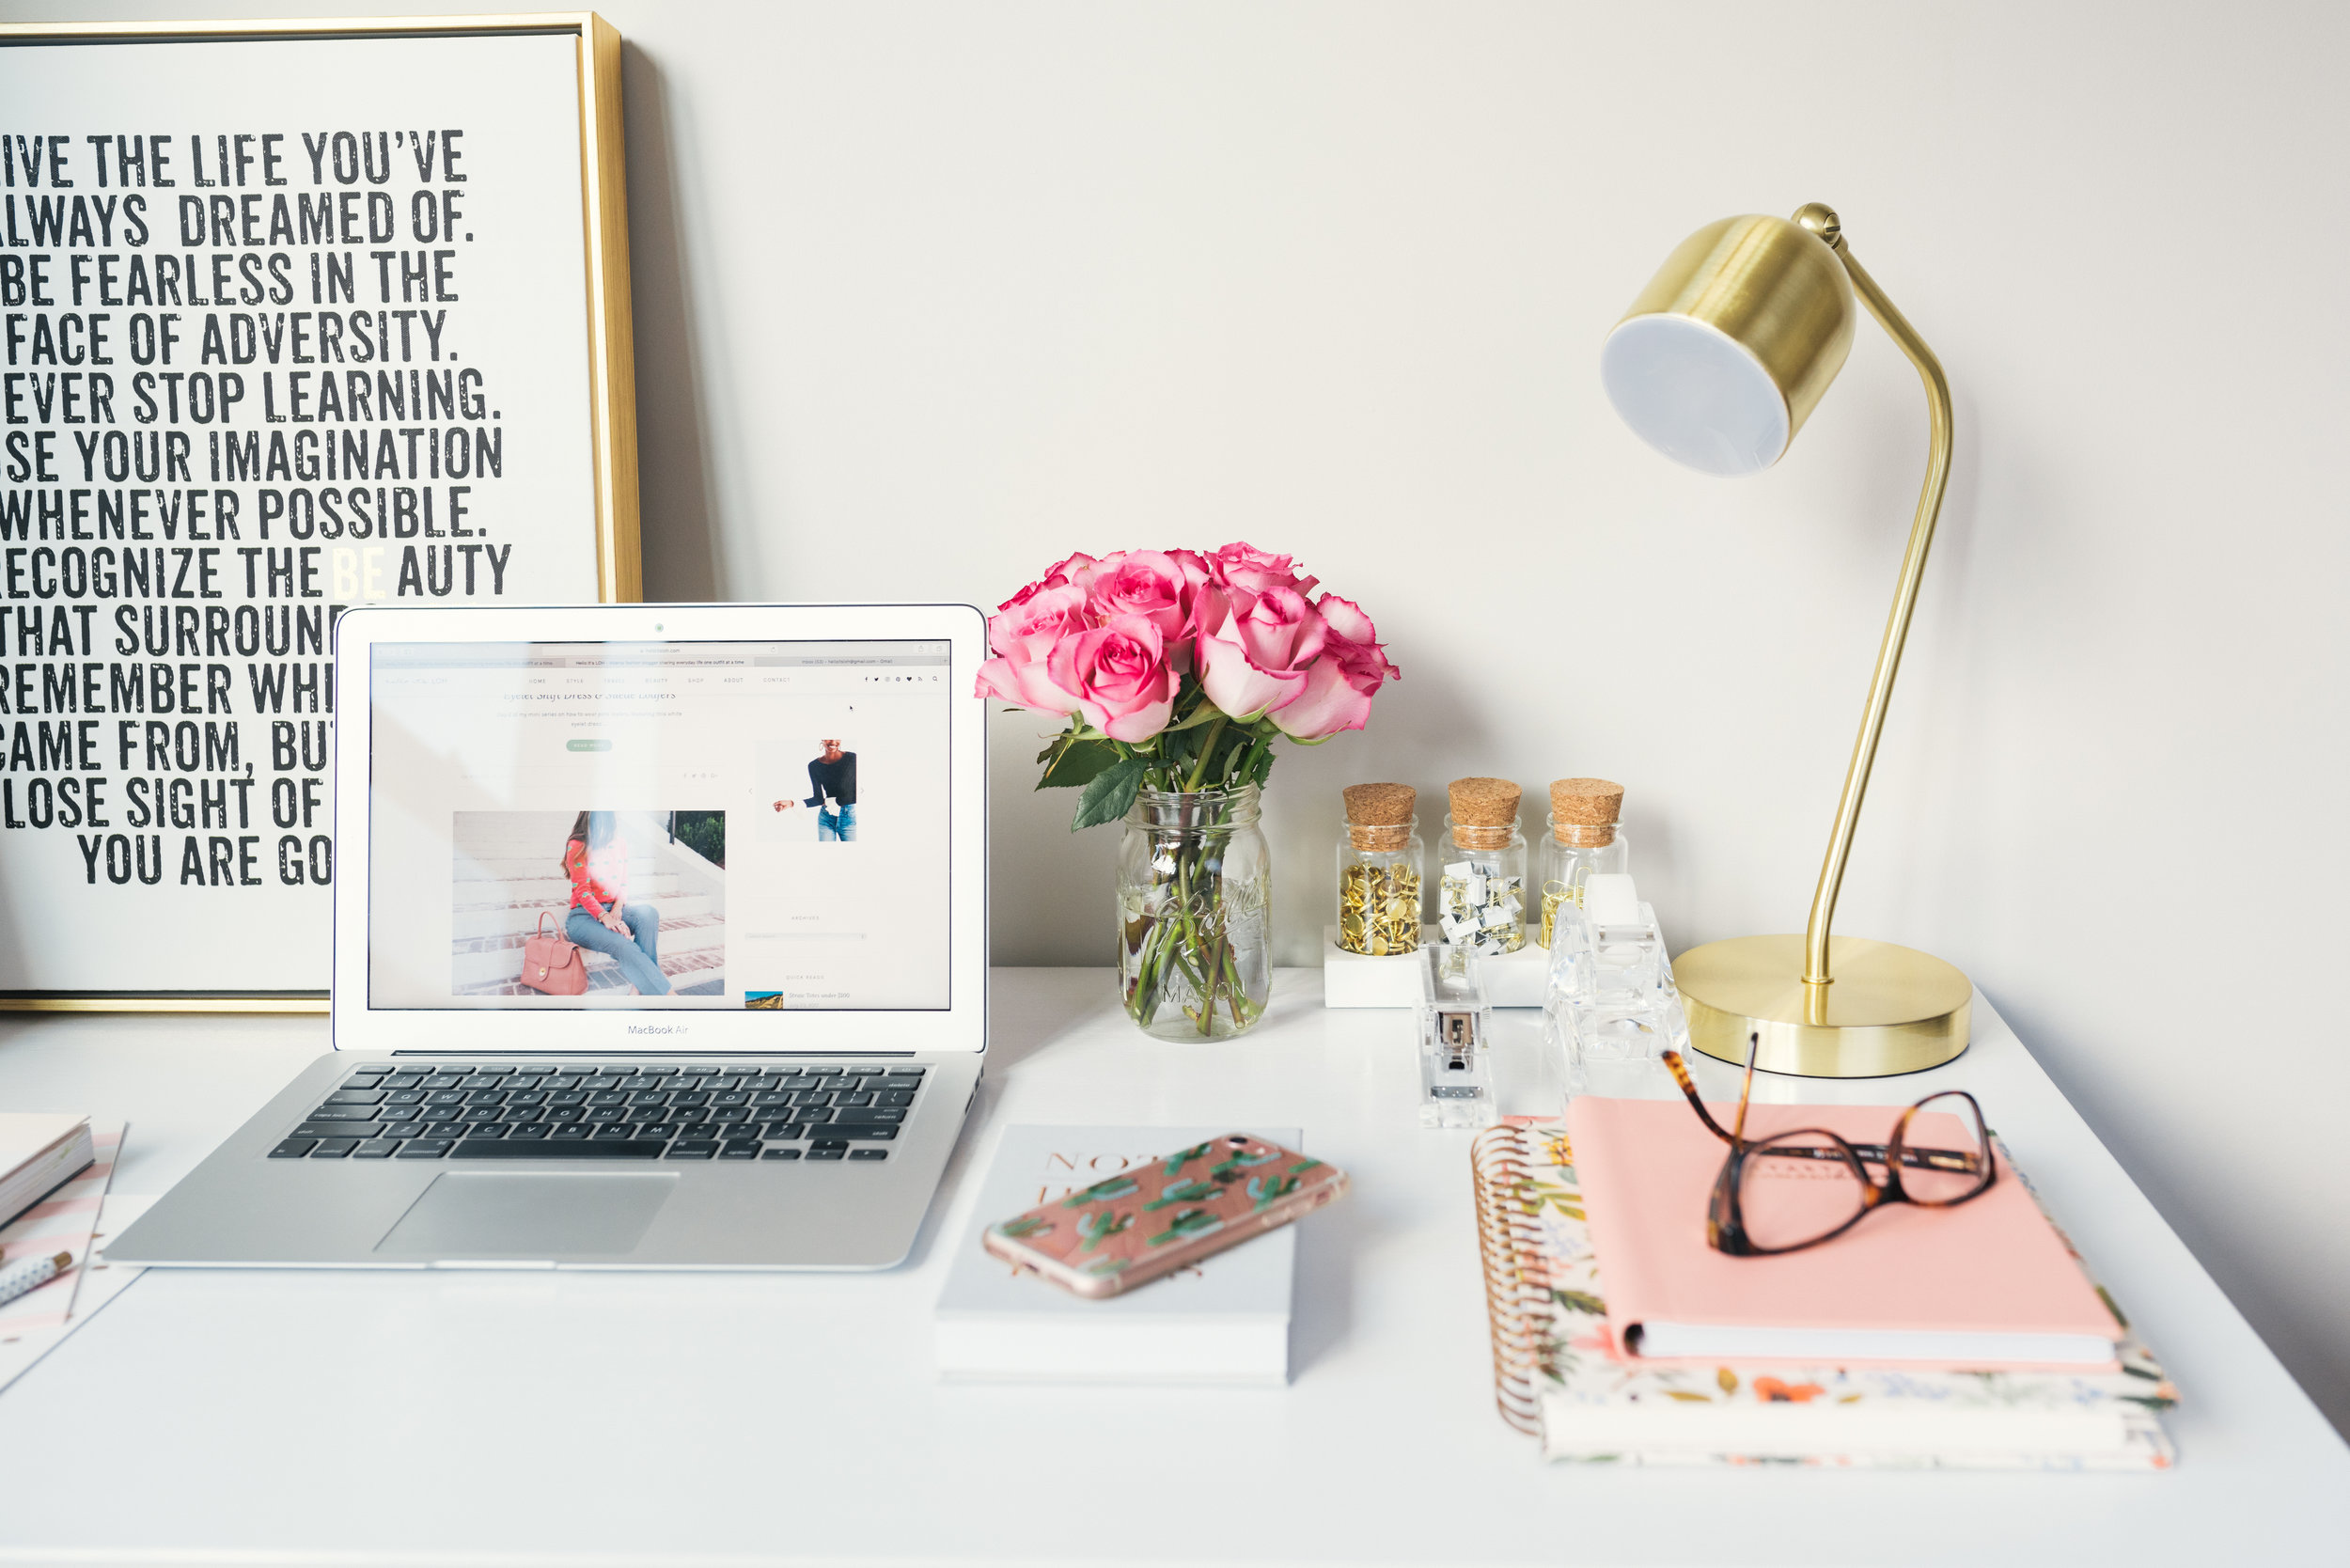 WHAT WE COVER - + SIGNING UP FOR AN ACCOUNT+ CHOOSING PRODUCTS TO SELL+ BRANDING YOURSELF AND YOUR STORE+ CONNECTING SOCIAL MEDIA ACCOUNTS+ MARKETING AND ENGAGEMENT TIPS